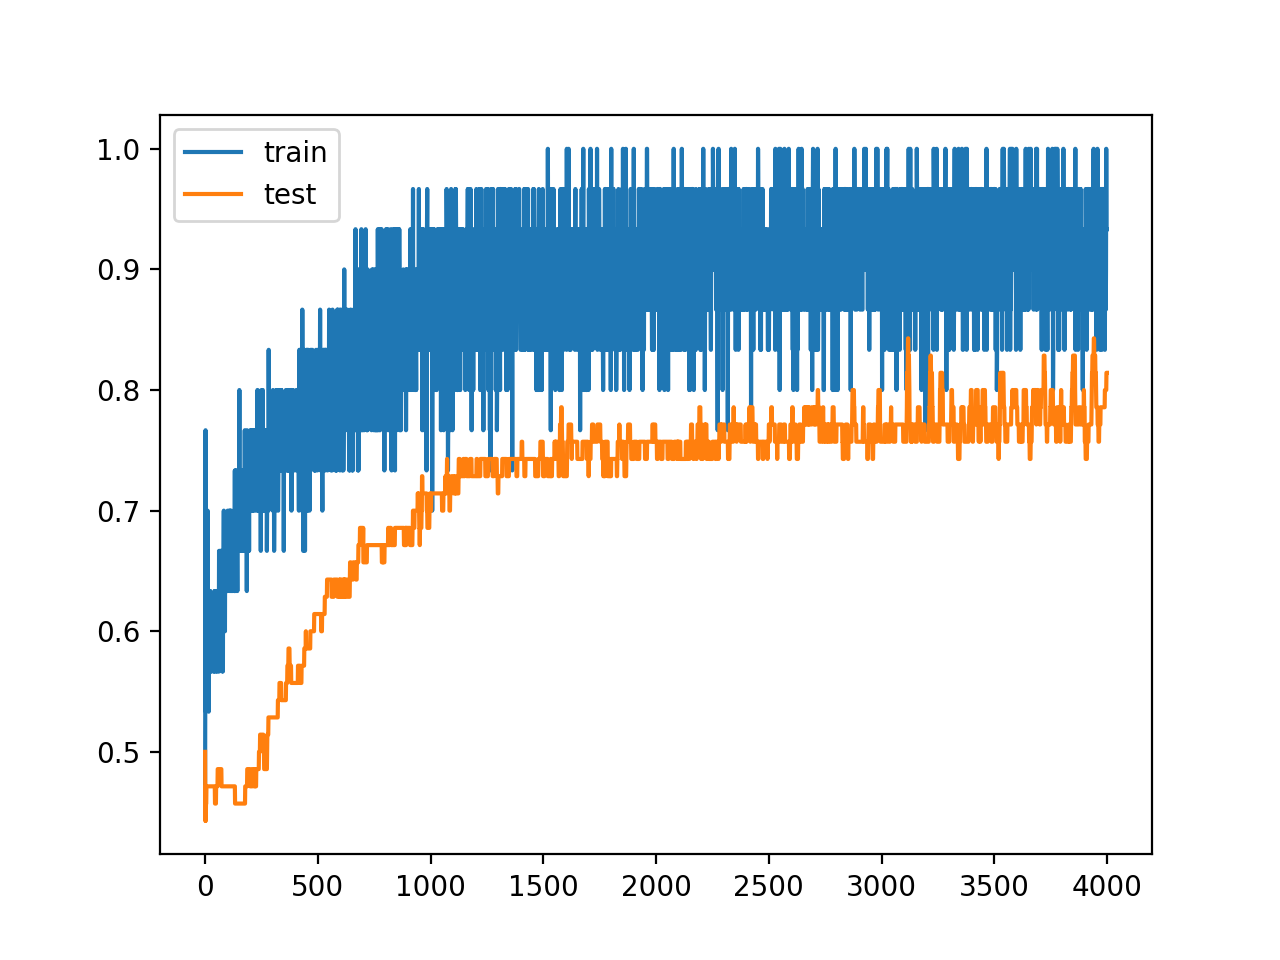 Line Plots of Accuracy on Train and Test Datasets While Training With Dropout Regularization